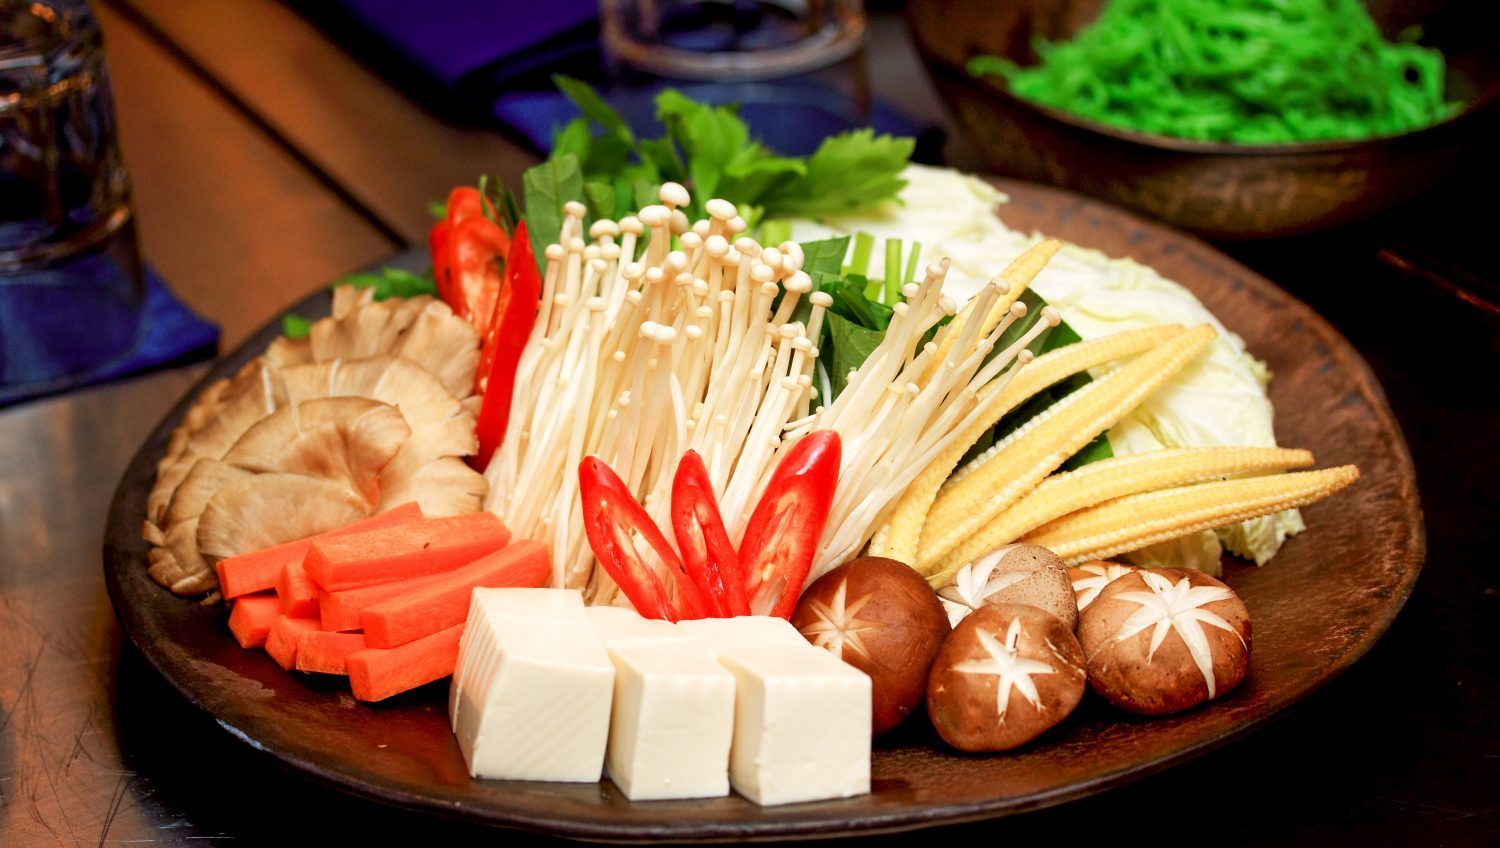 2.baba-hotpot-best-shabu-poolclub-restaurants-in-phuket-gourment-traveller-best-food-baba-phuket-luxury-pool-villa-thailand